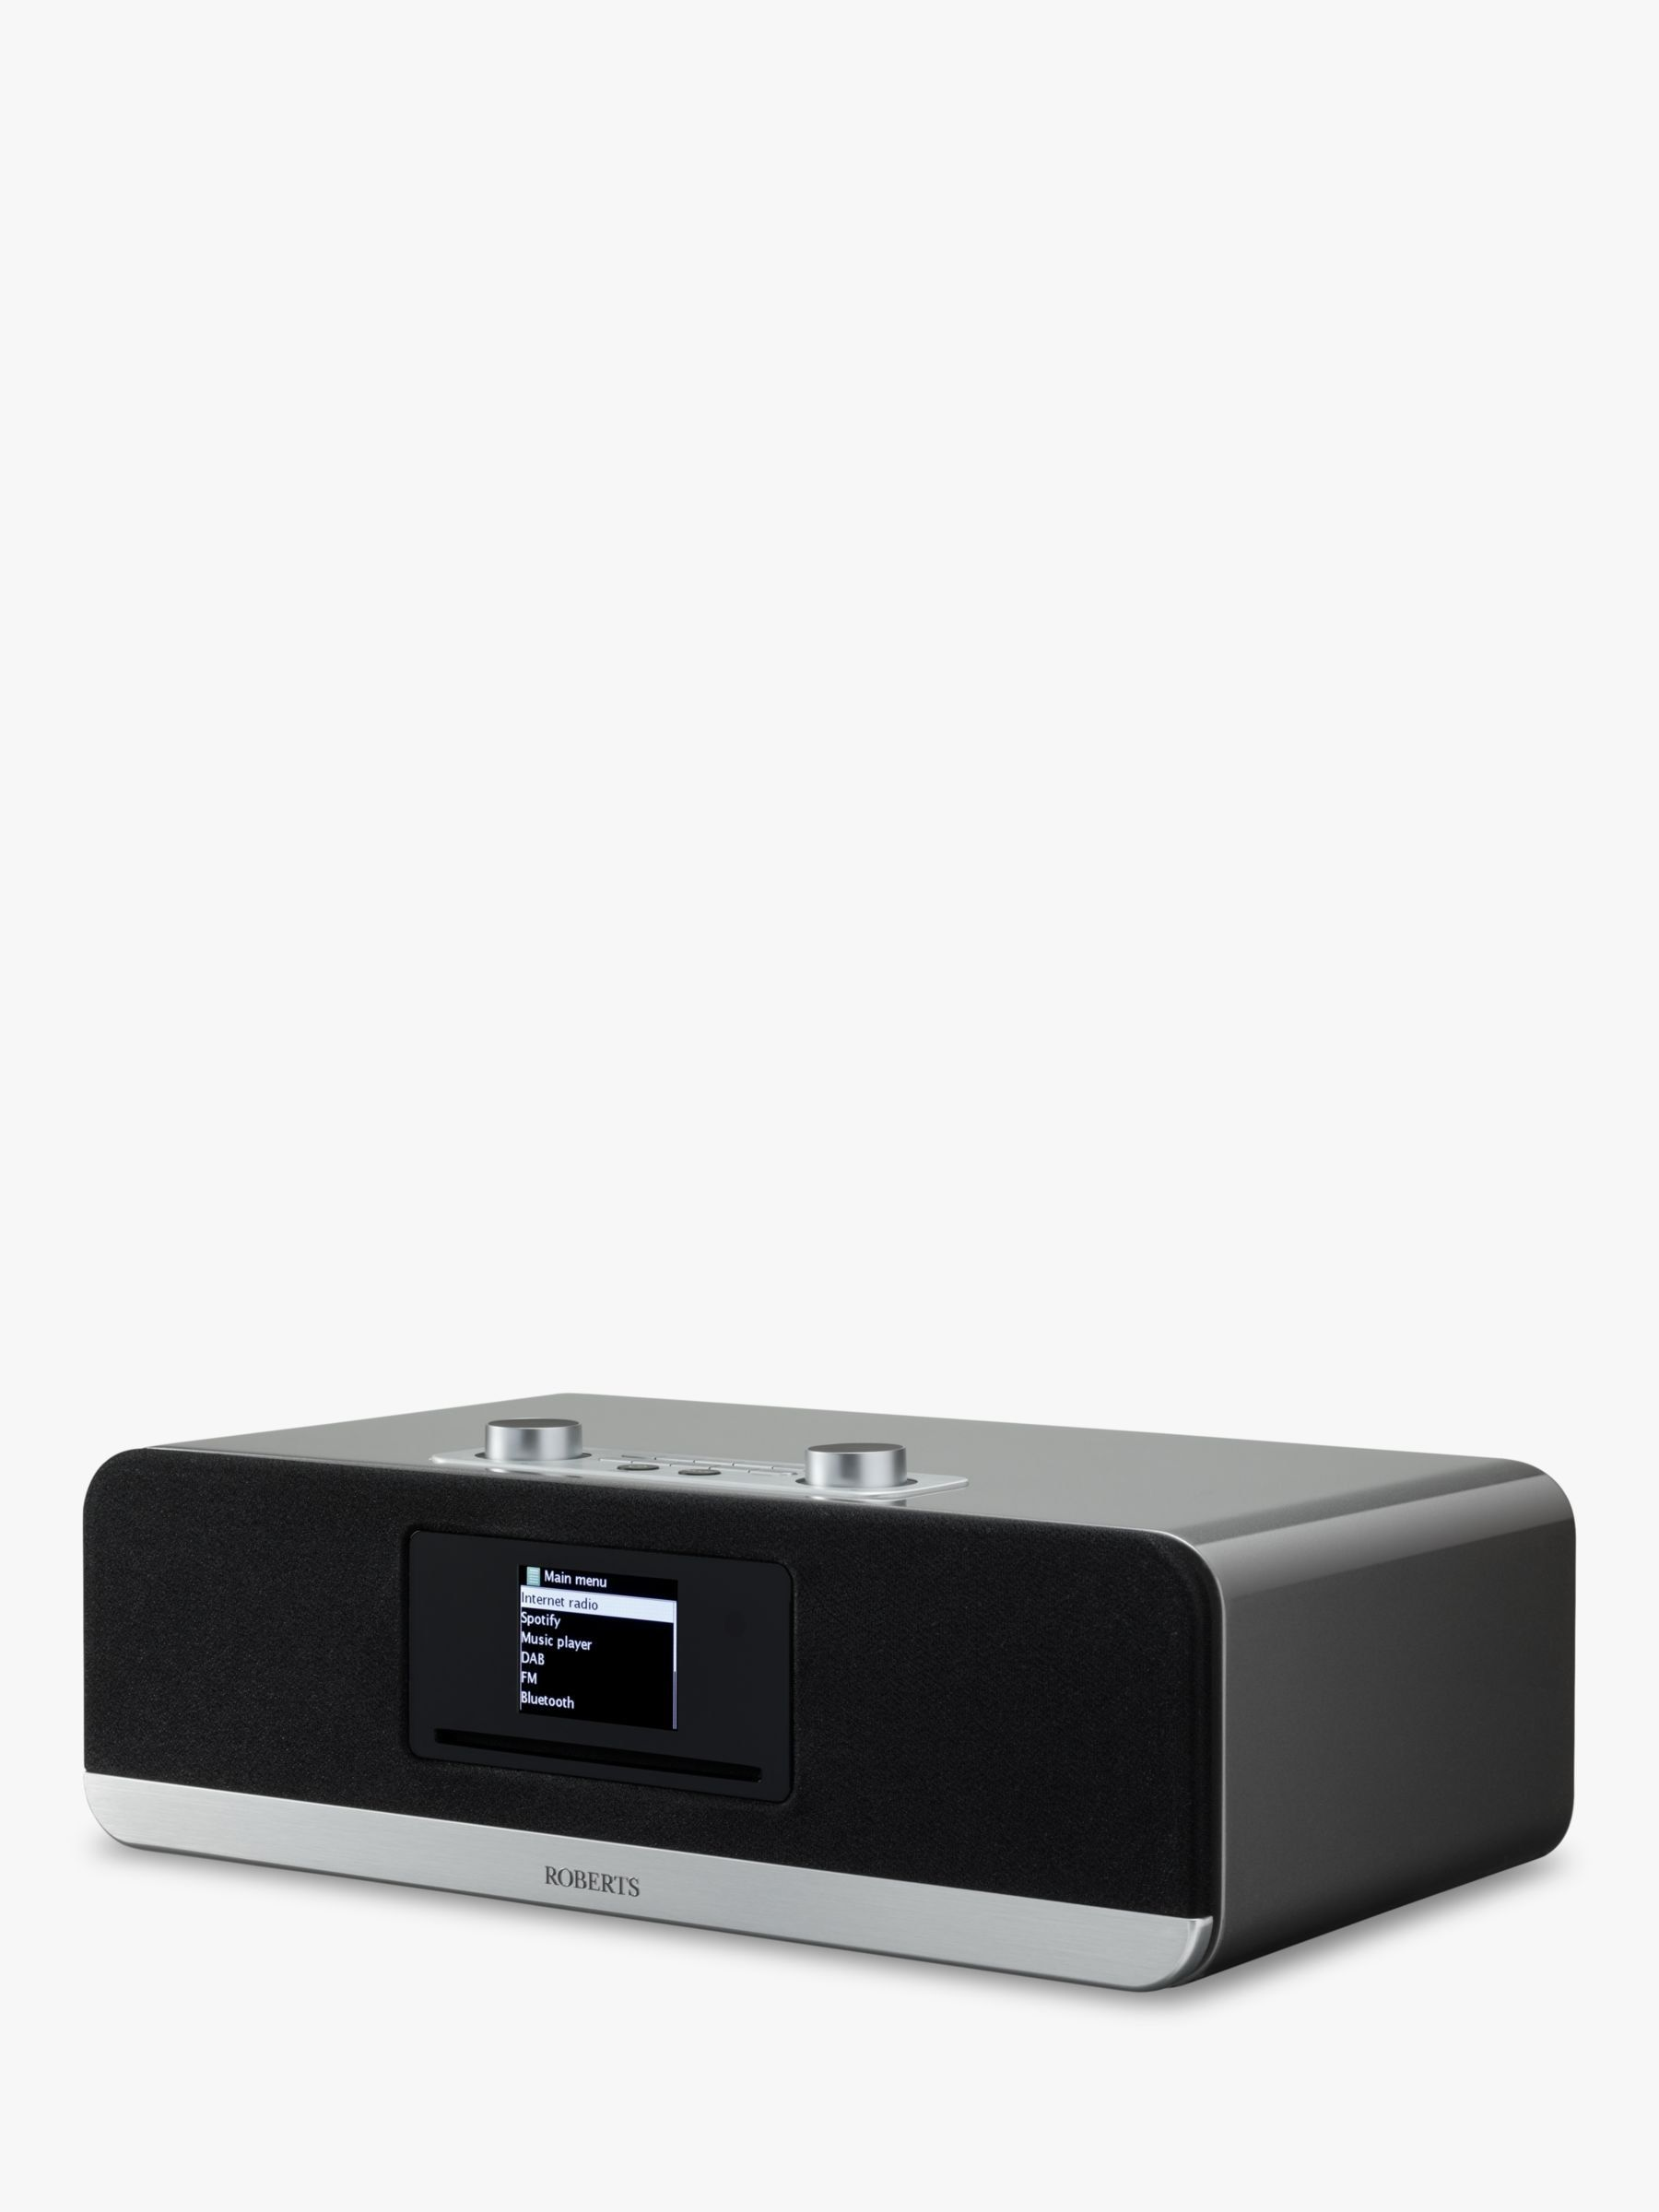 ROBERTS Stream 67 DAB+/FM/Internet Radio Wi-Fi Bluetooth All-In-One Smart Music System #musicsystem